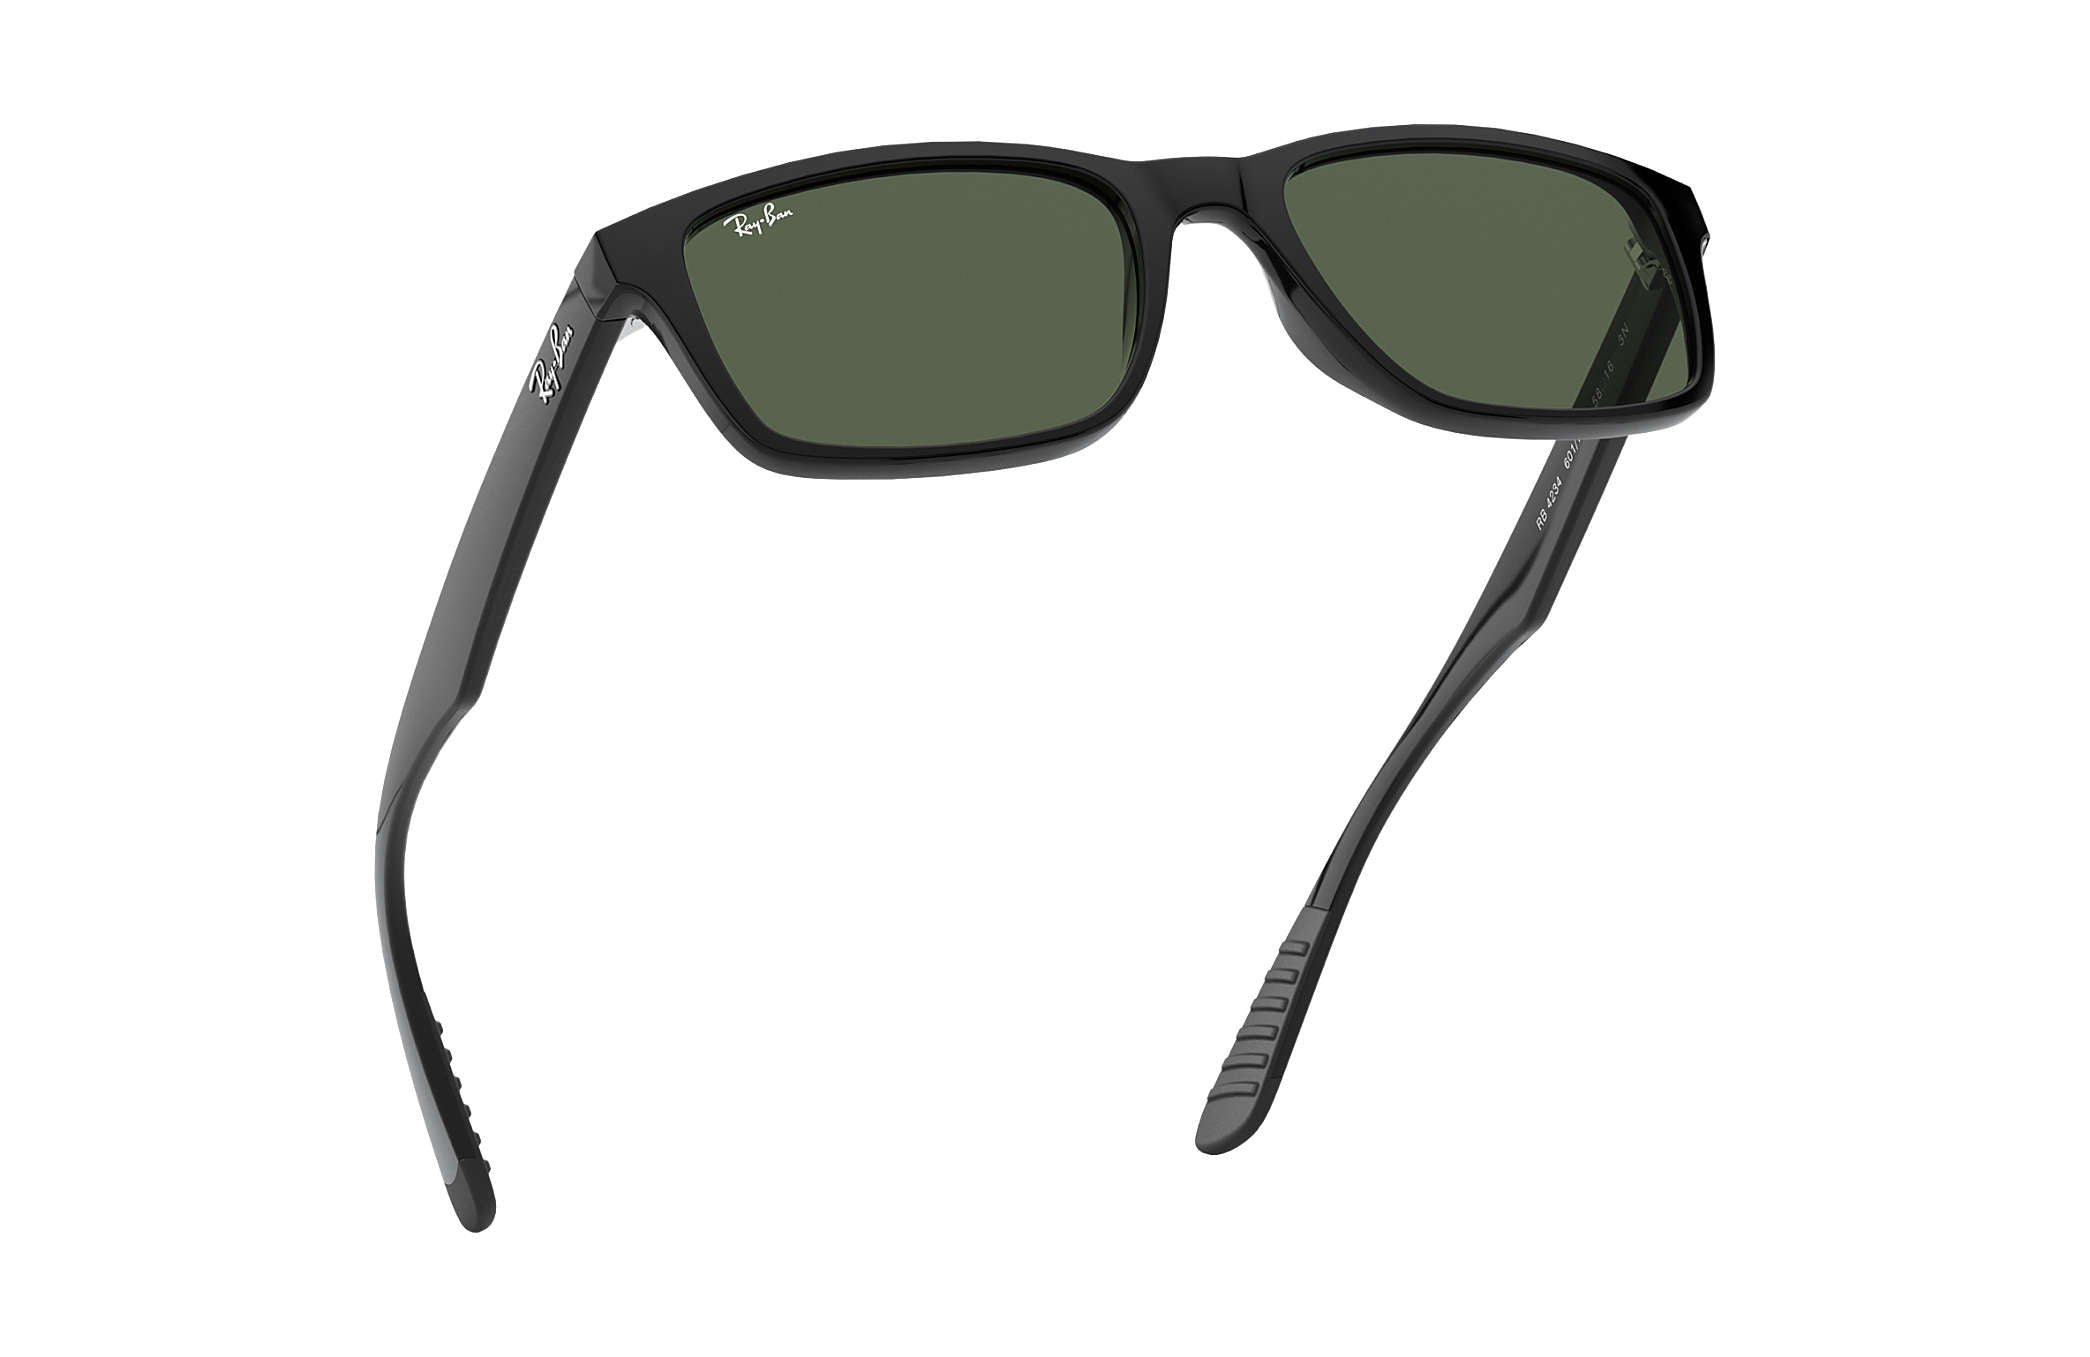 RAY-BAN 0RB4234 SUNGLASSES - OPTICIWEAR.COM